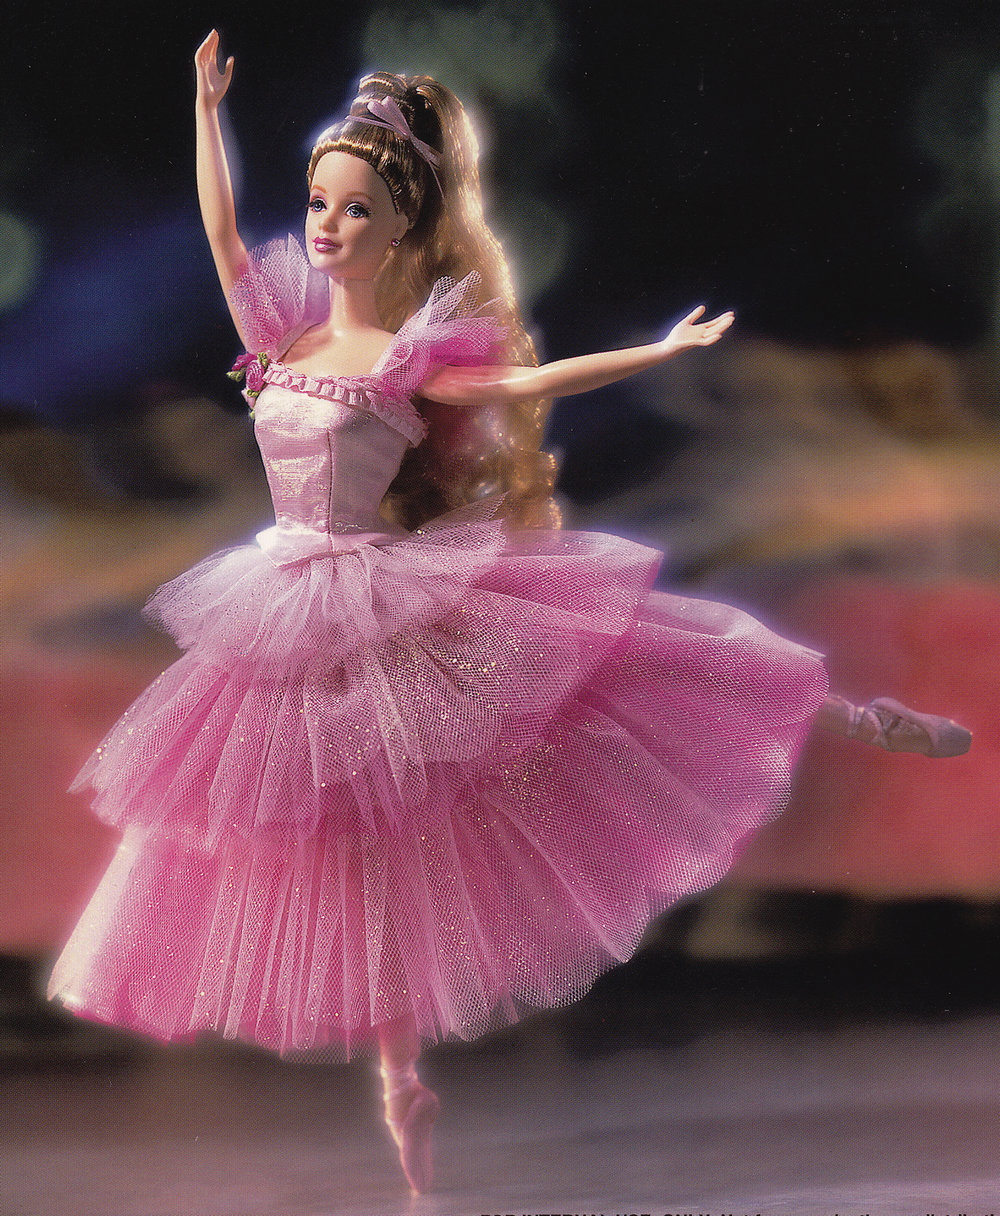 Barbie Doll as the Flower in the Nutcracker